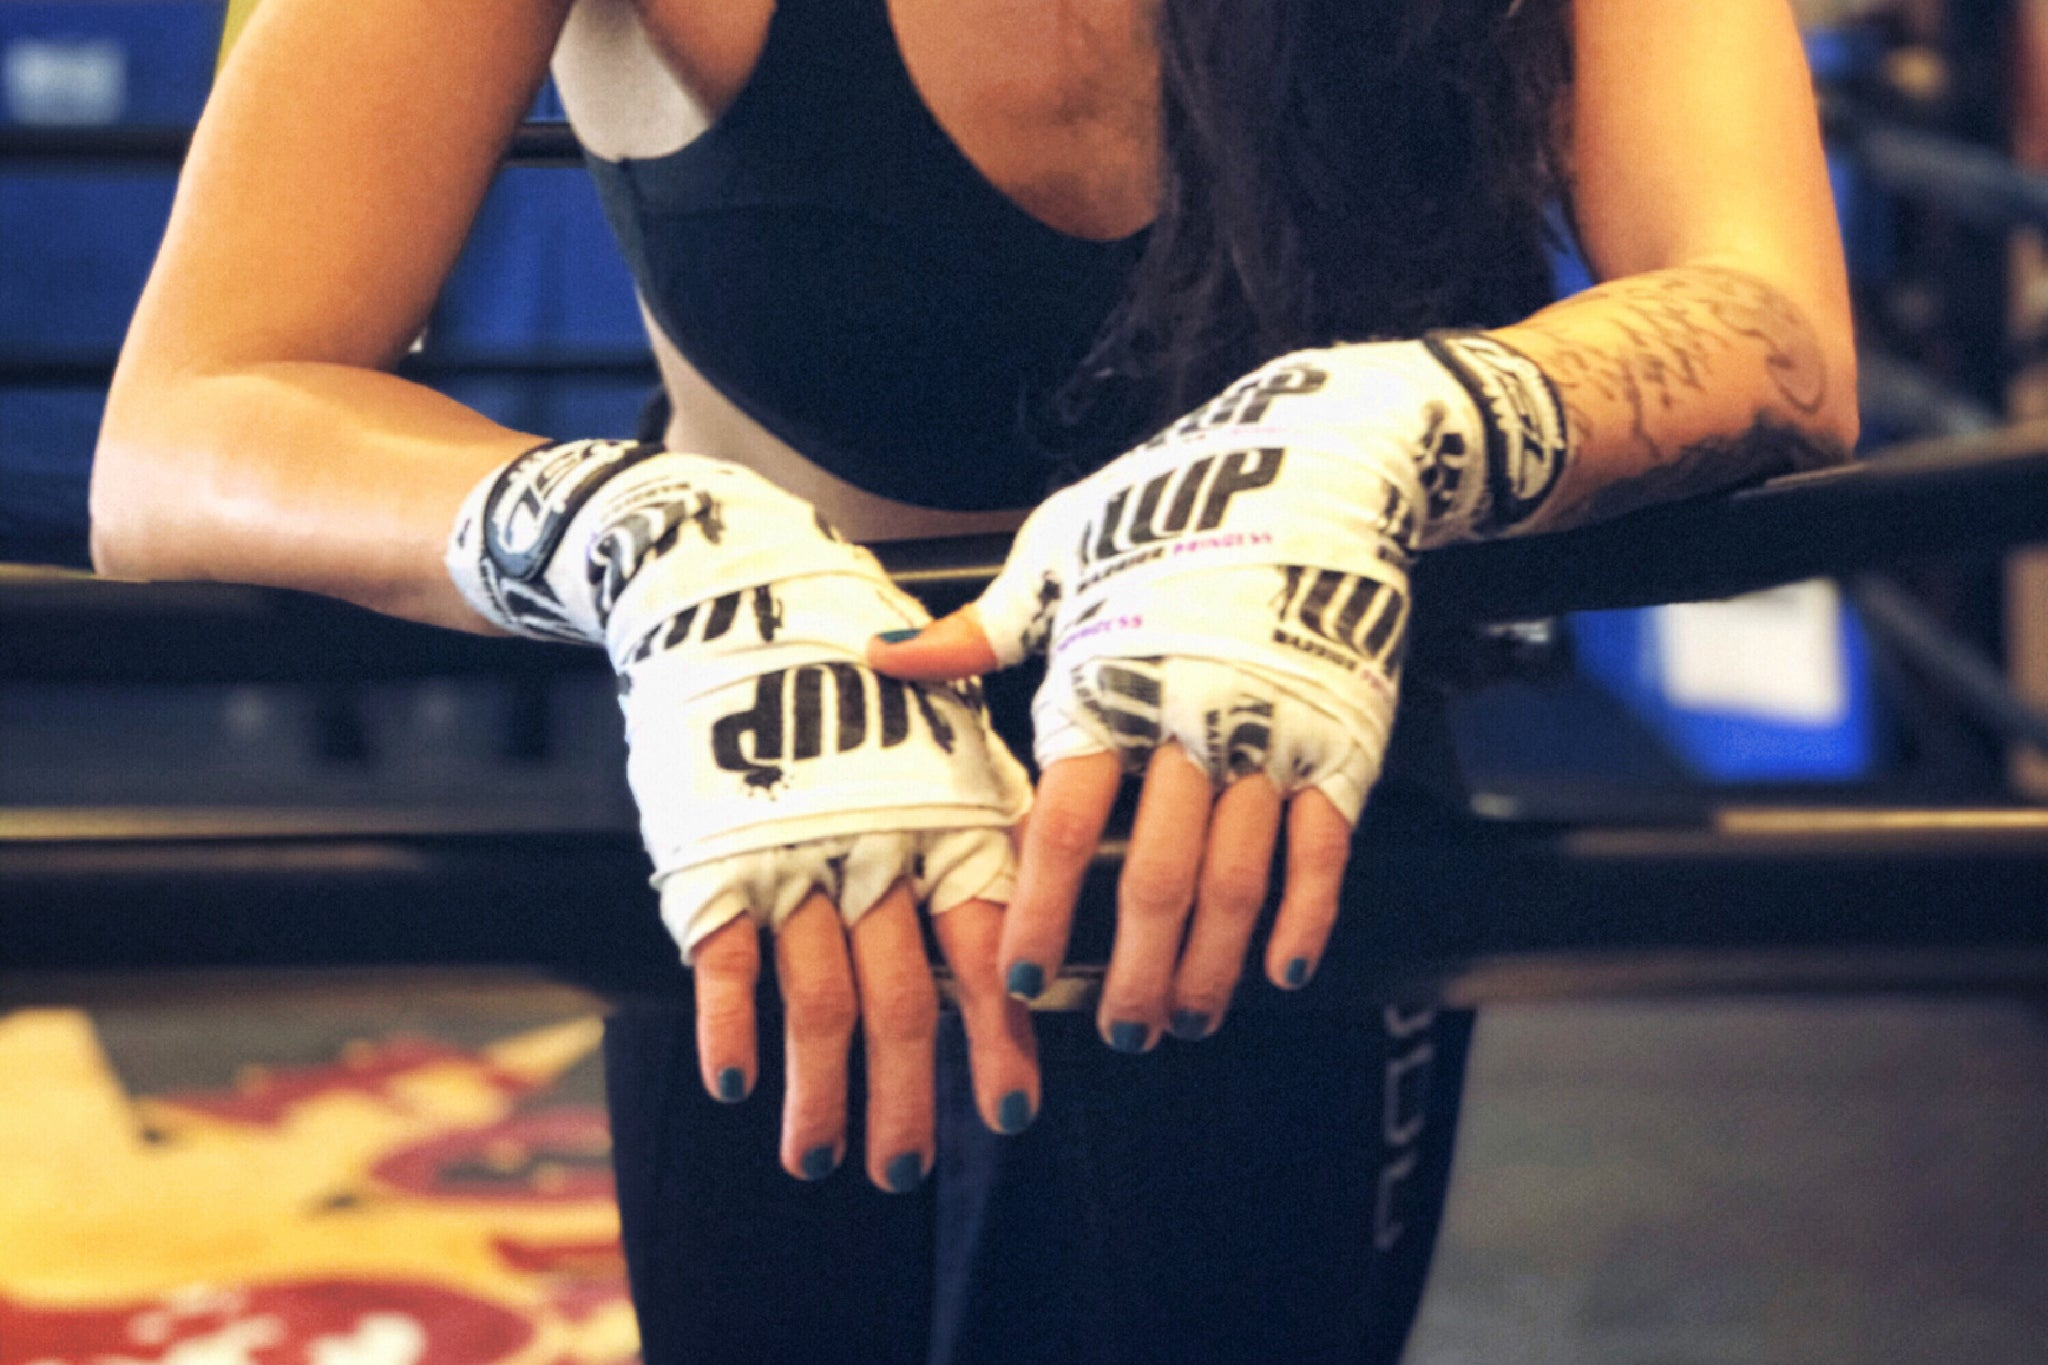 VSL Fighting and Leila Leilani Partner on Limited Edition Hand Wraps to Benefit GirlForward